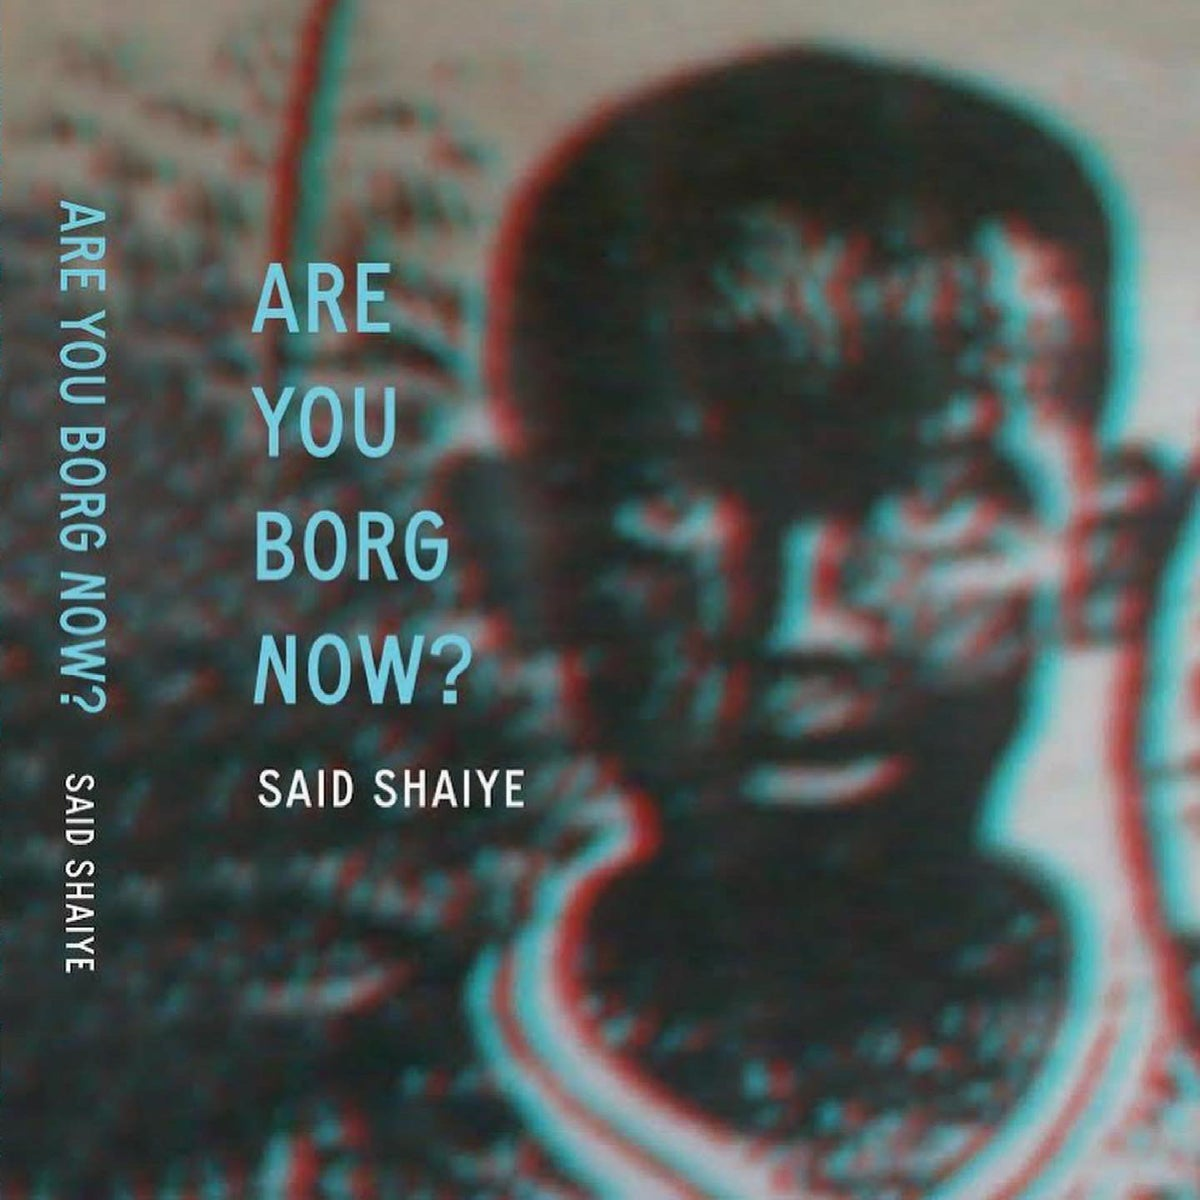 ARE YOU BORG NOW?  by Said Shaiye